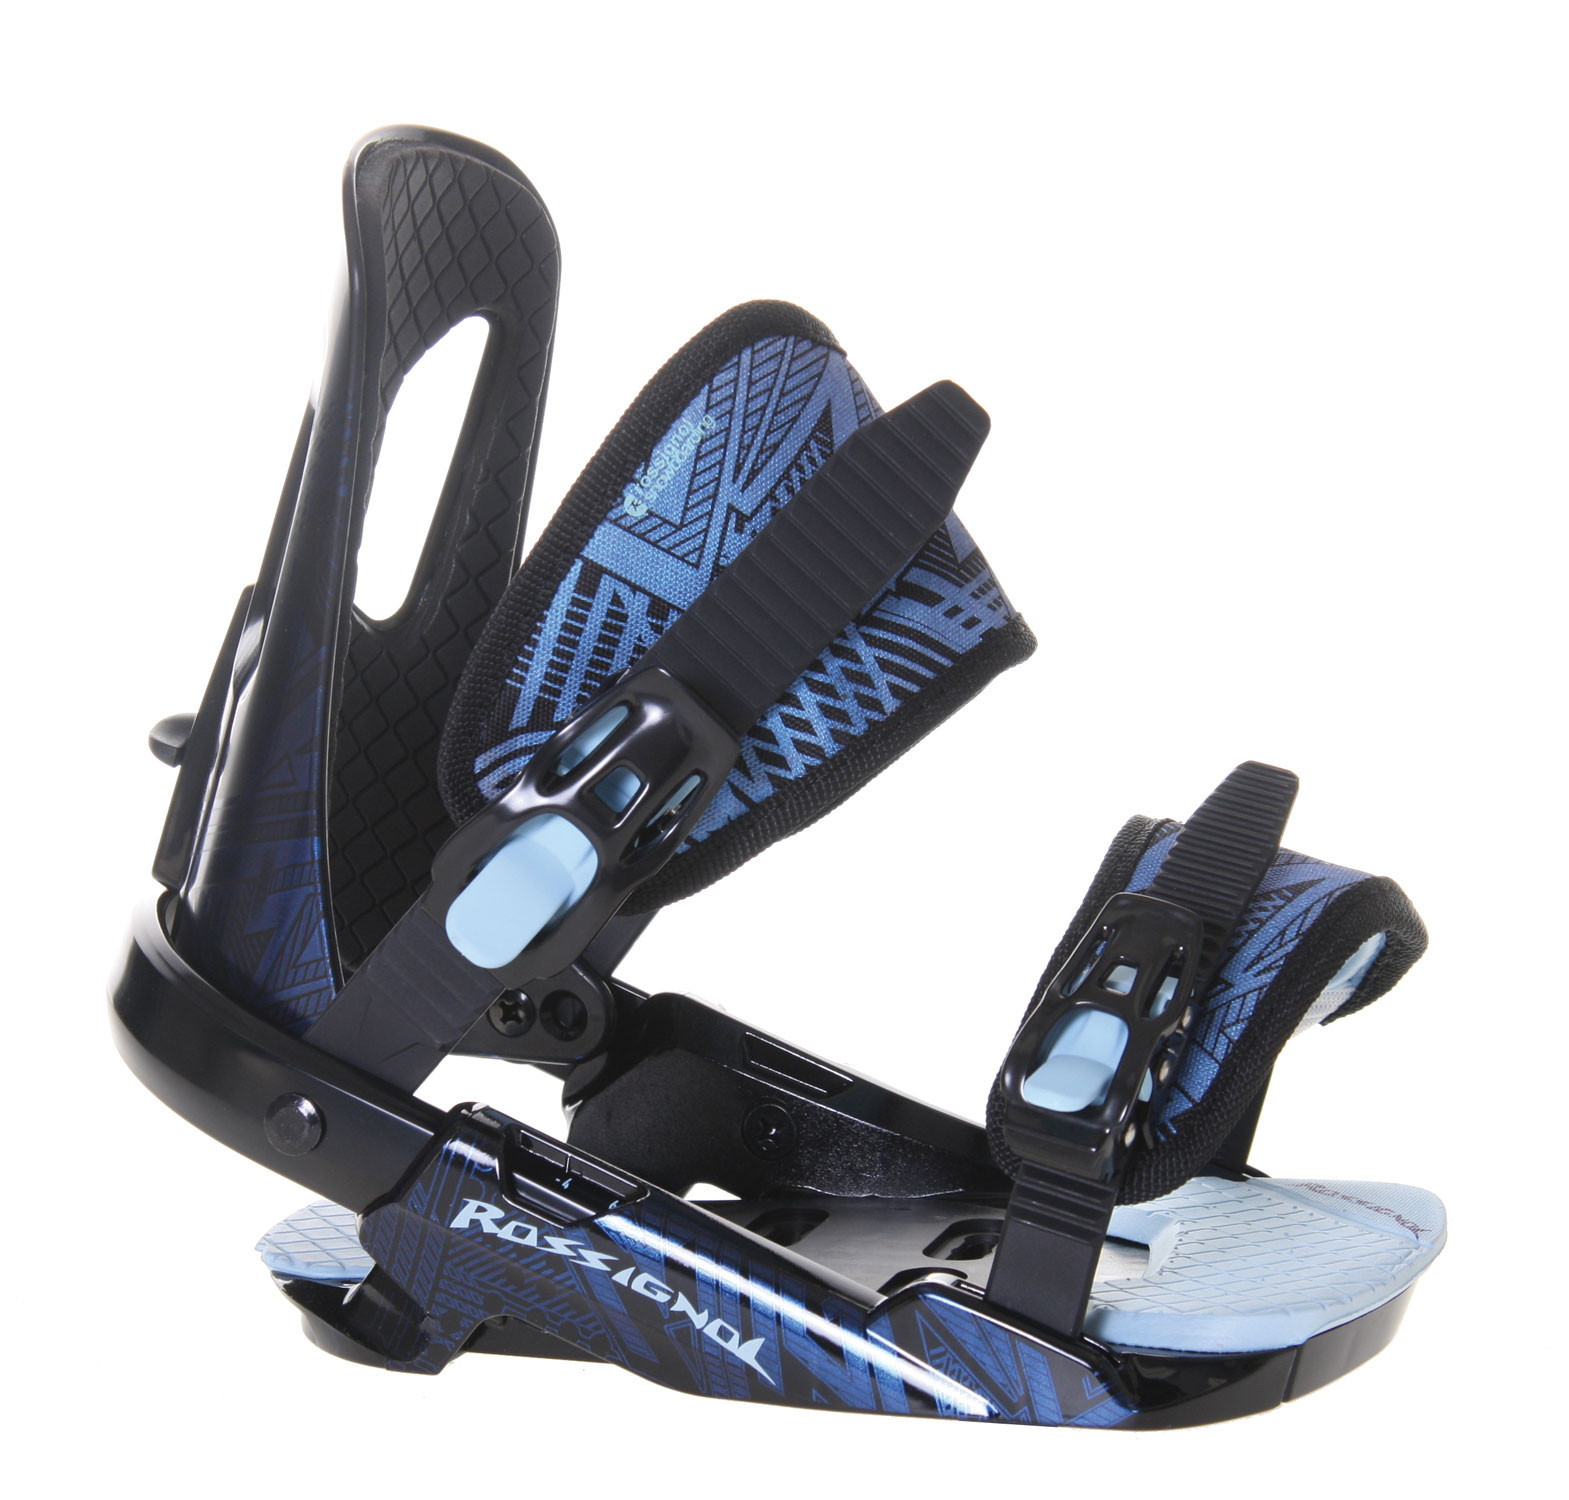 Snowboard Rossignol Harmony Snowboard Bindings are perfect for all skill levels. It works great on all-mountain terrain. It provides the performance that is needed from a binding with the comfort that is desired for all day riding! It provides a tool free length adjuster which is perfect while you are on the mountain with no tools on hand. It is also composed of high quality materials to give you the durability that is needed while tearing down the mountain.Key Features of The Rossignol Harmony Women's Snowboard Bindings: 3D HS FI Straps HC-H (Heel Cup Extruded Hollow Technology) I-Back Light Puffy Pads - $83.95